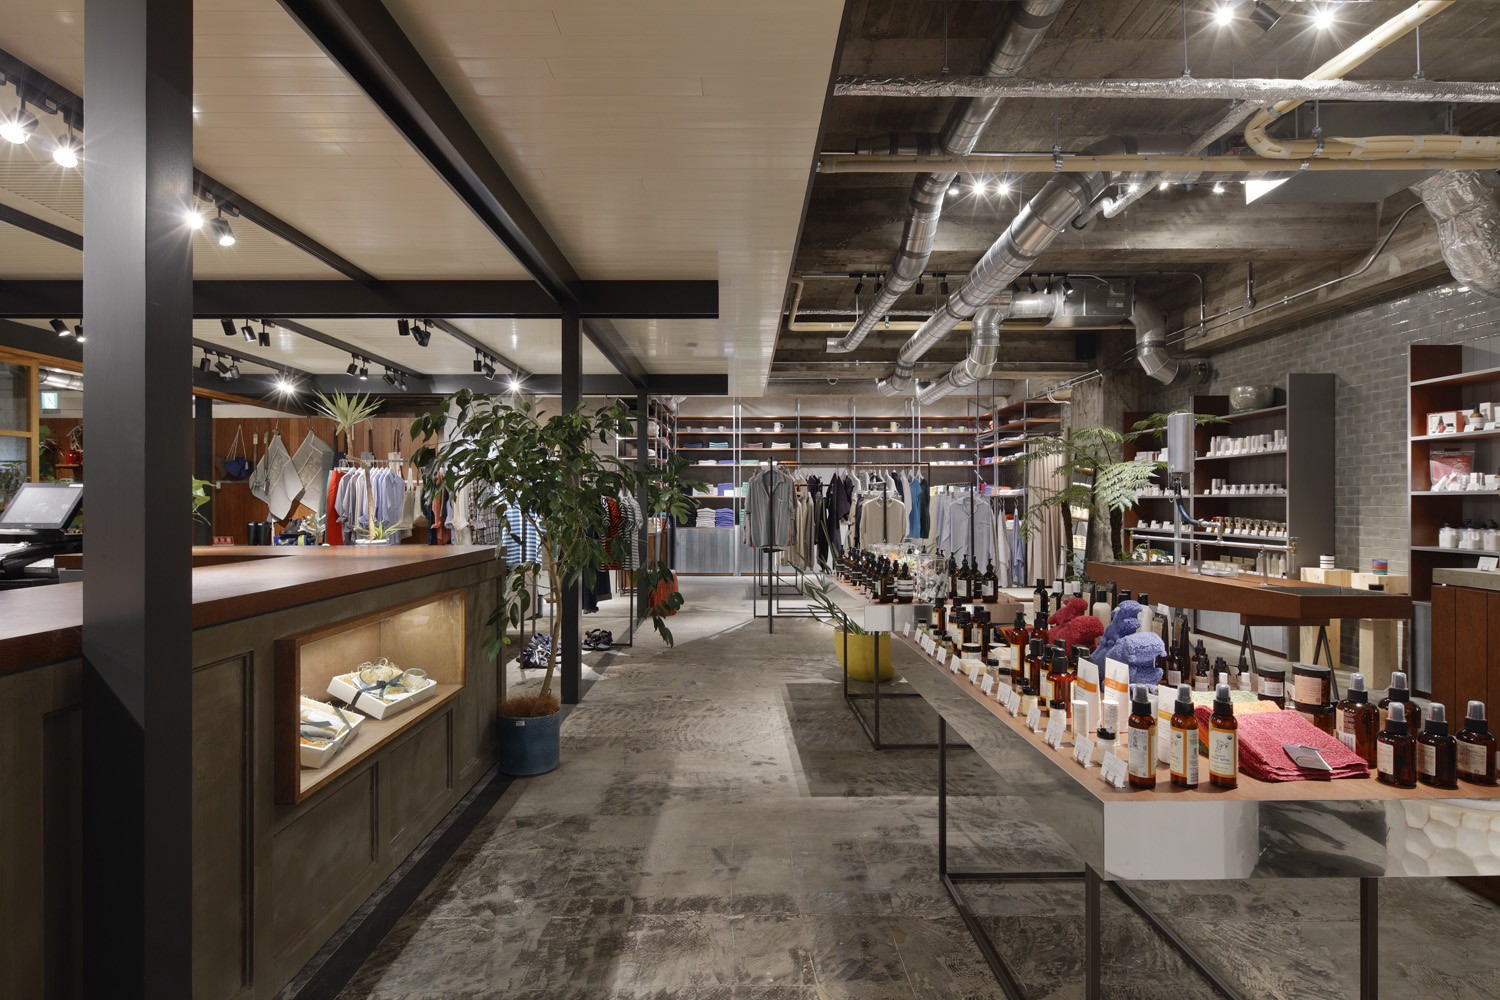 BIOTOP Osaka  Lifestyle shop designed not only the part